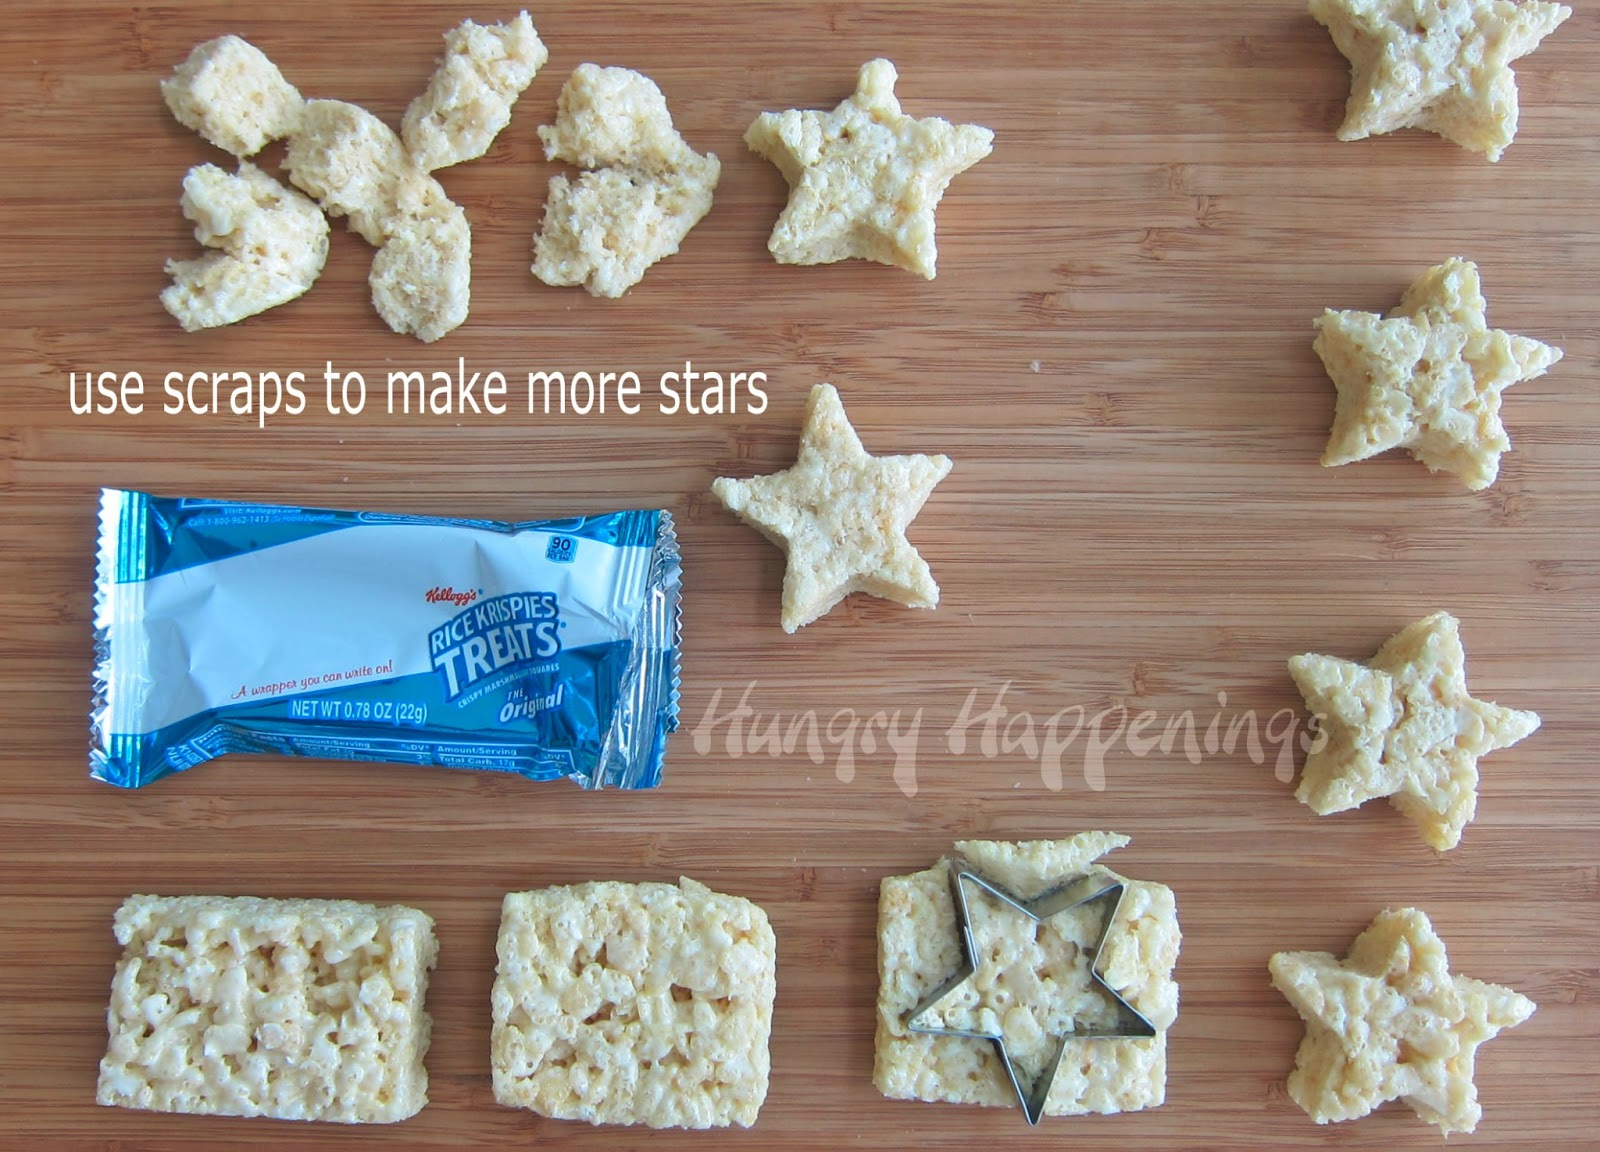 Home handmade candies chocolate dipped rice krispy treats 2 - Patriotic Pops Red White And Blue Candy Coated Cereal Treat Stars